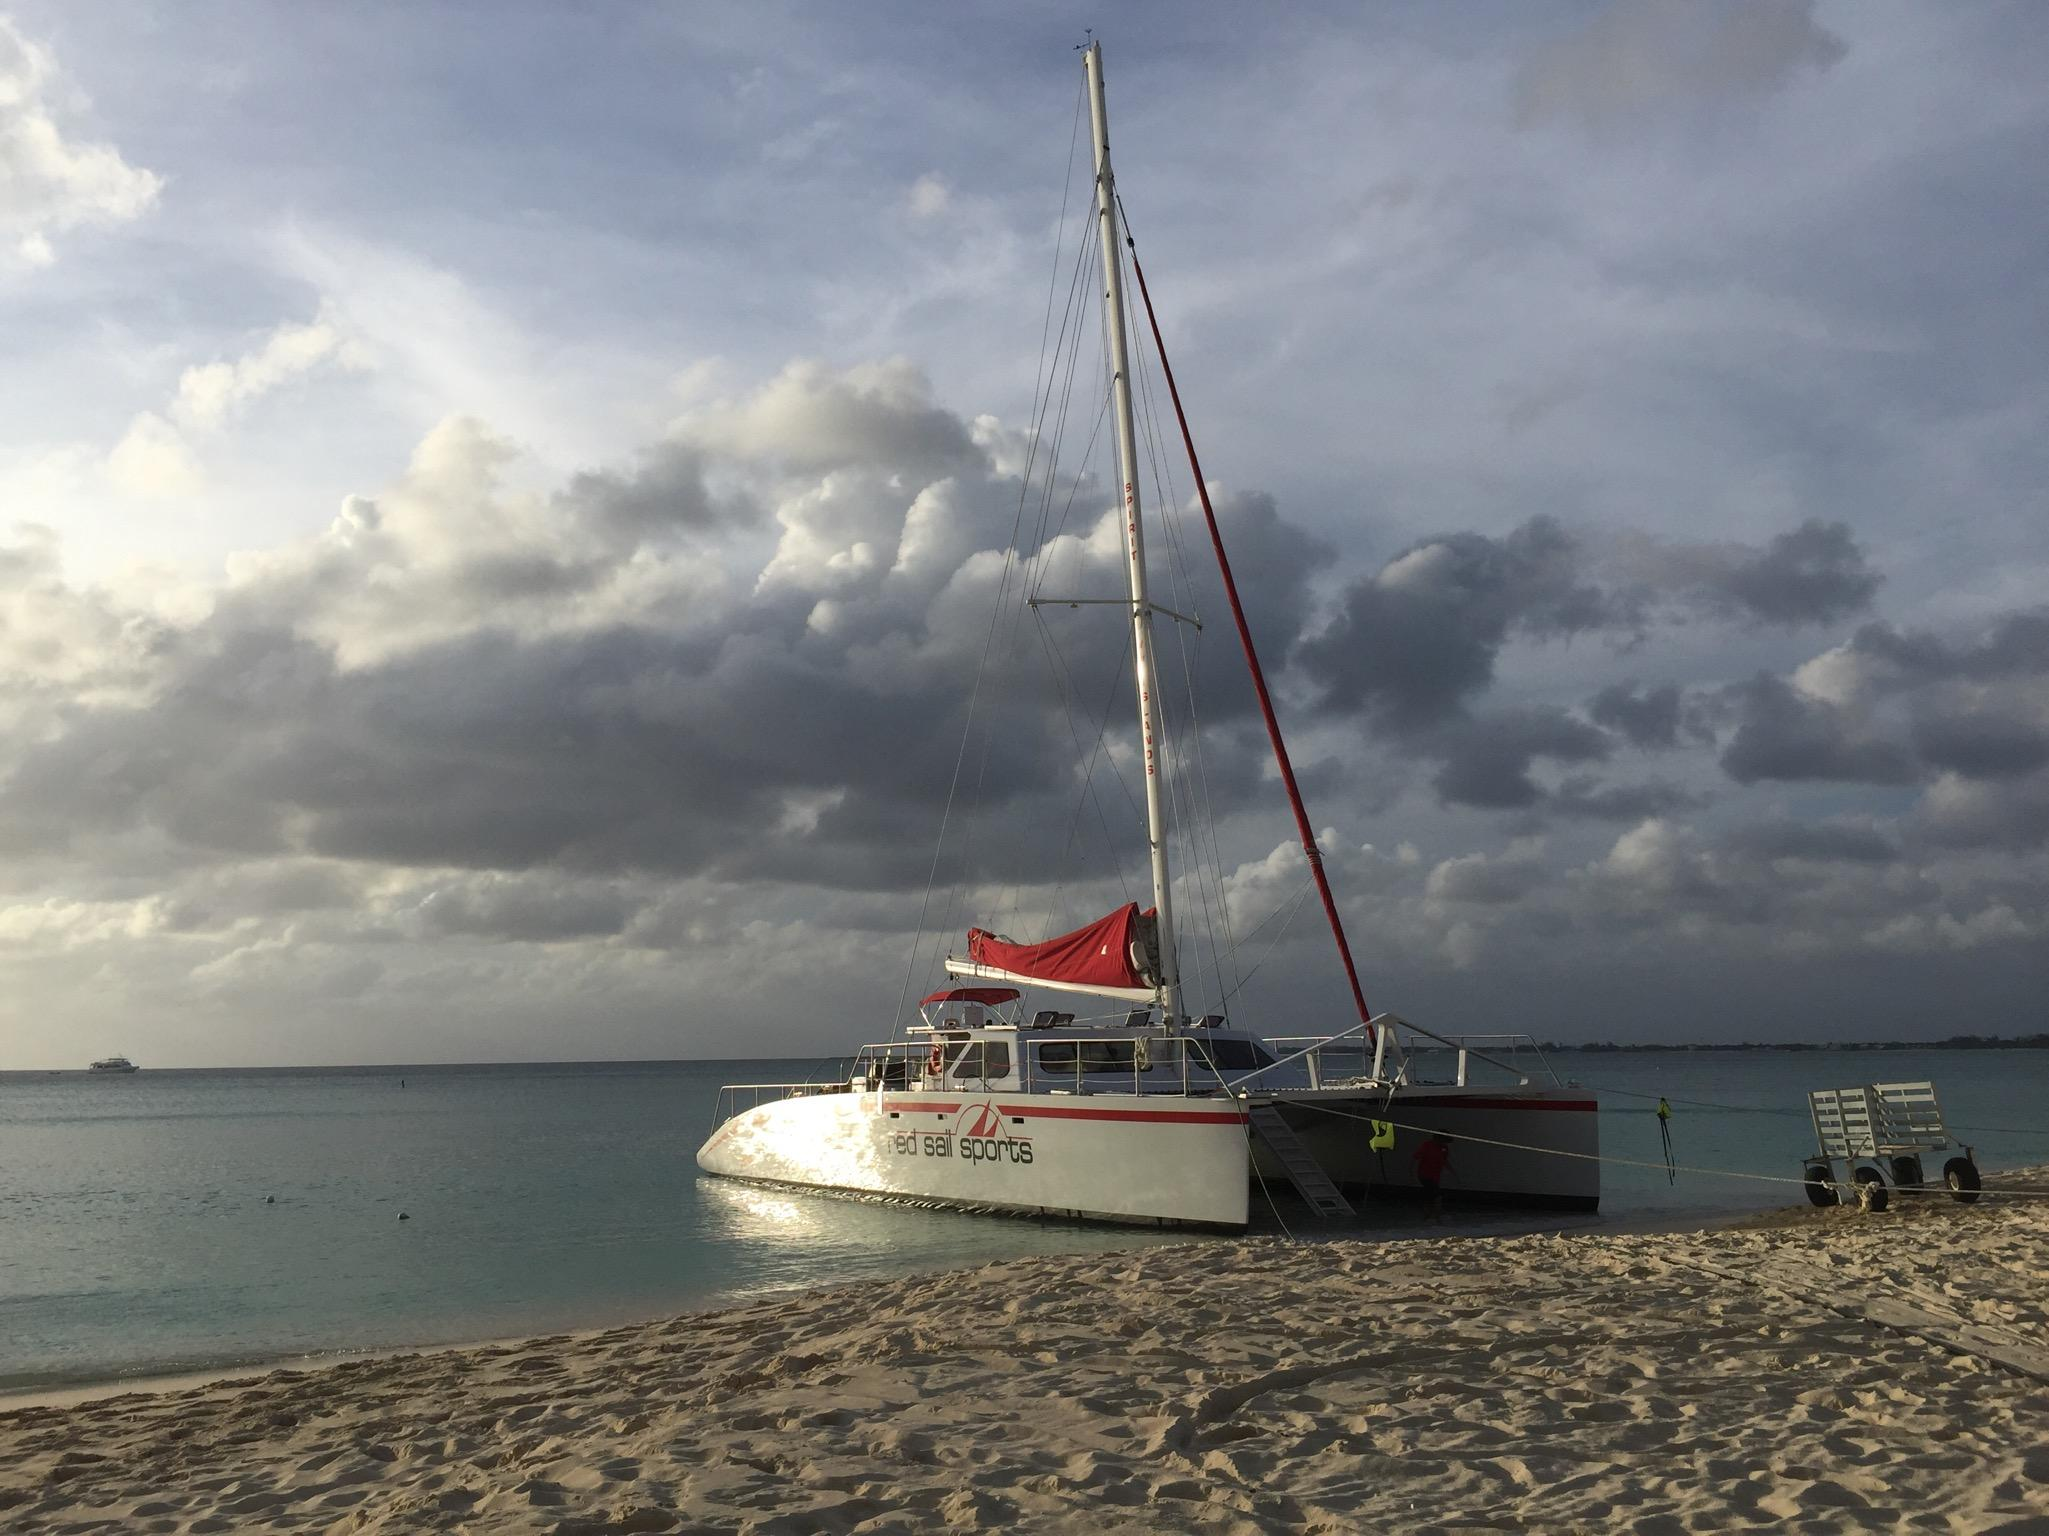 Red Sails Sports